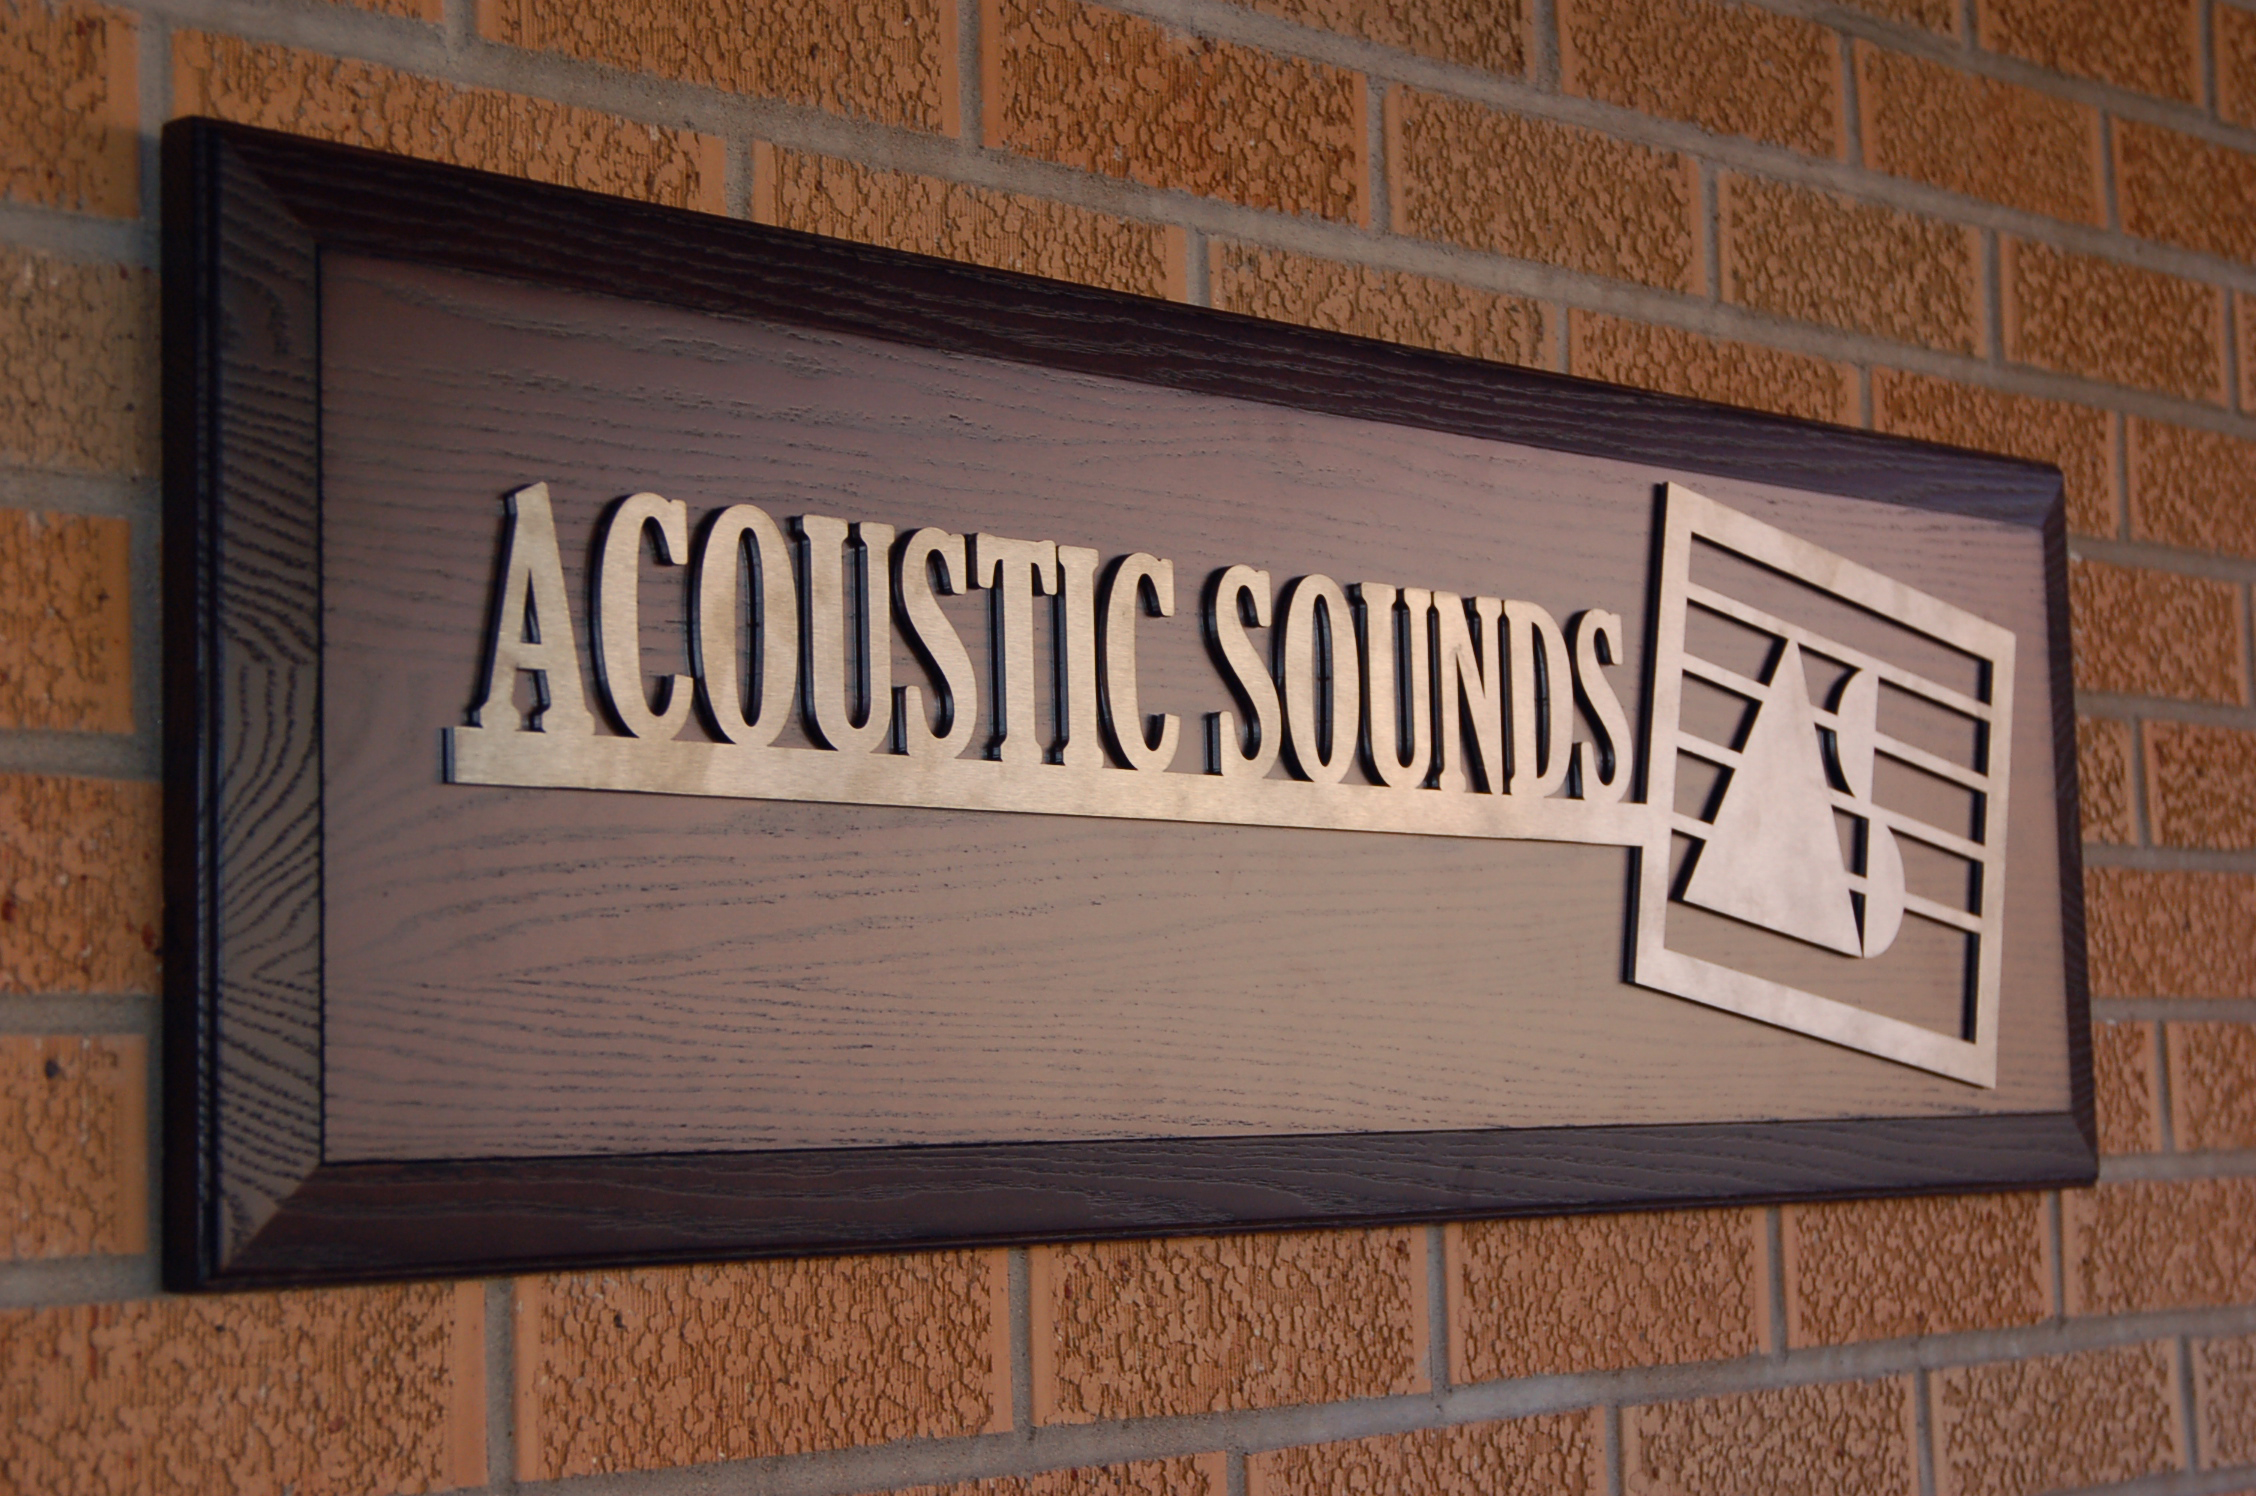 Acoustic Sounds, Inc  - Wikipedia